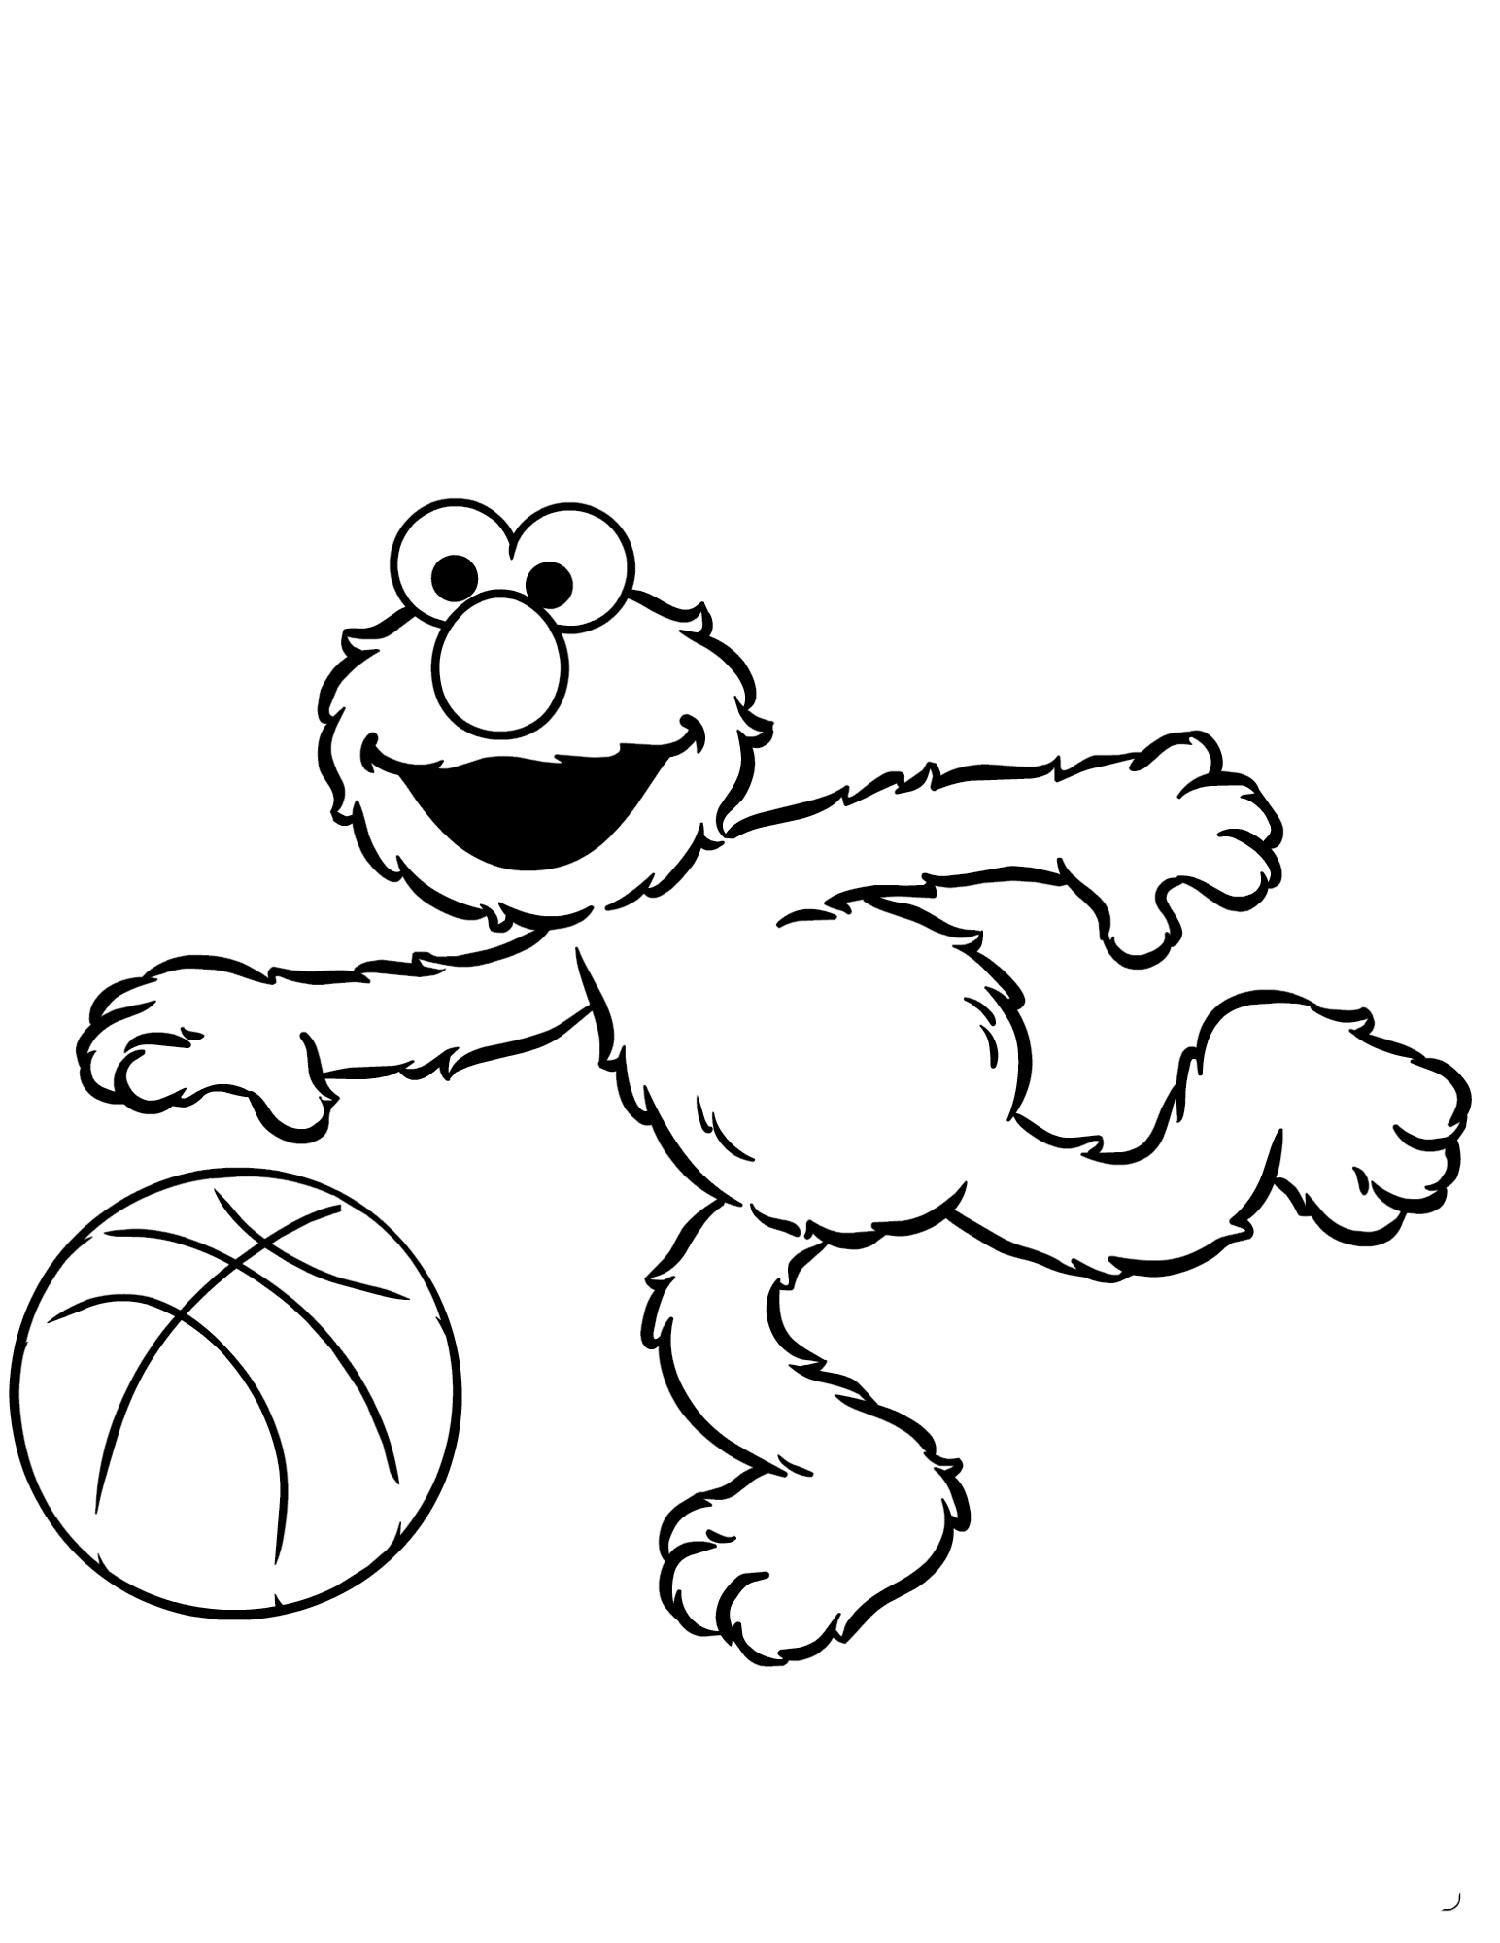 Printable Elmo Coloring Pages | K5 Worksheets